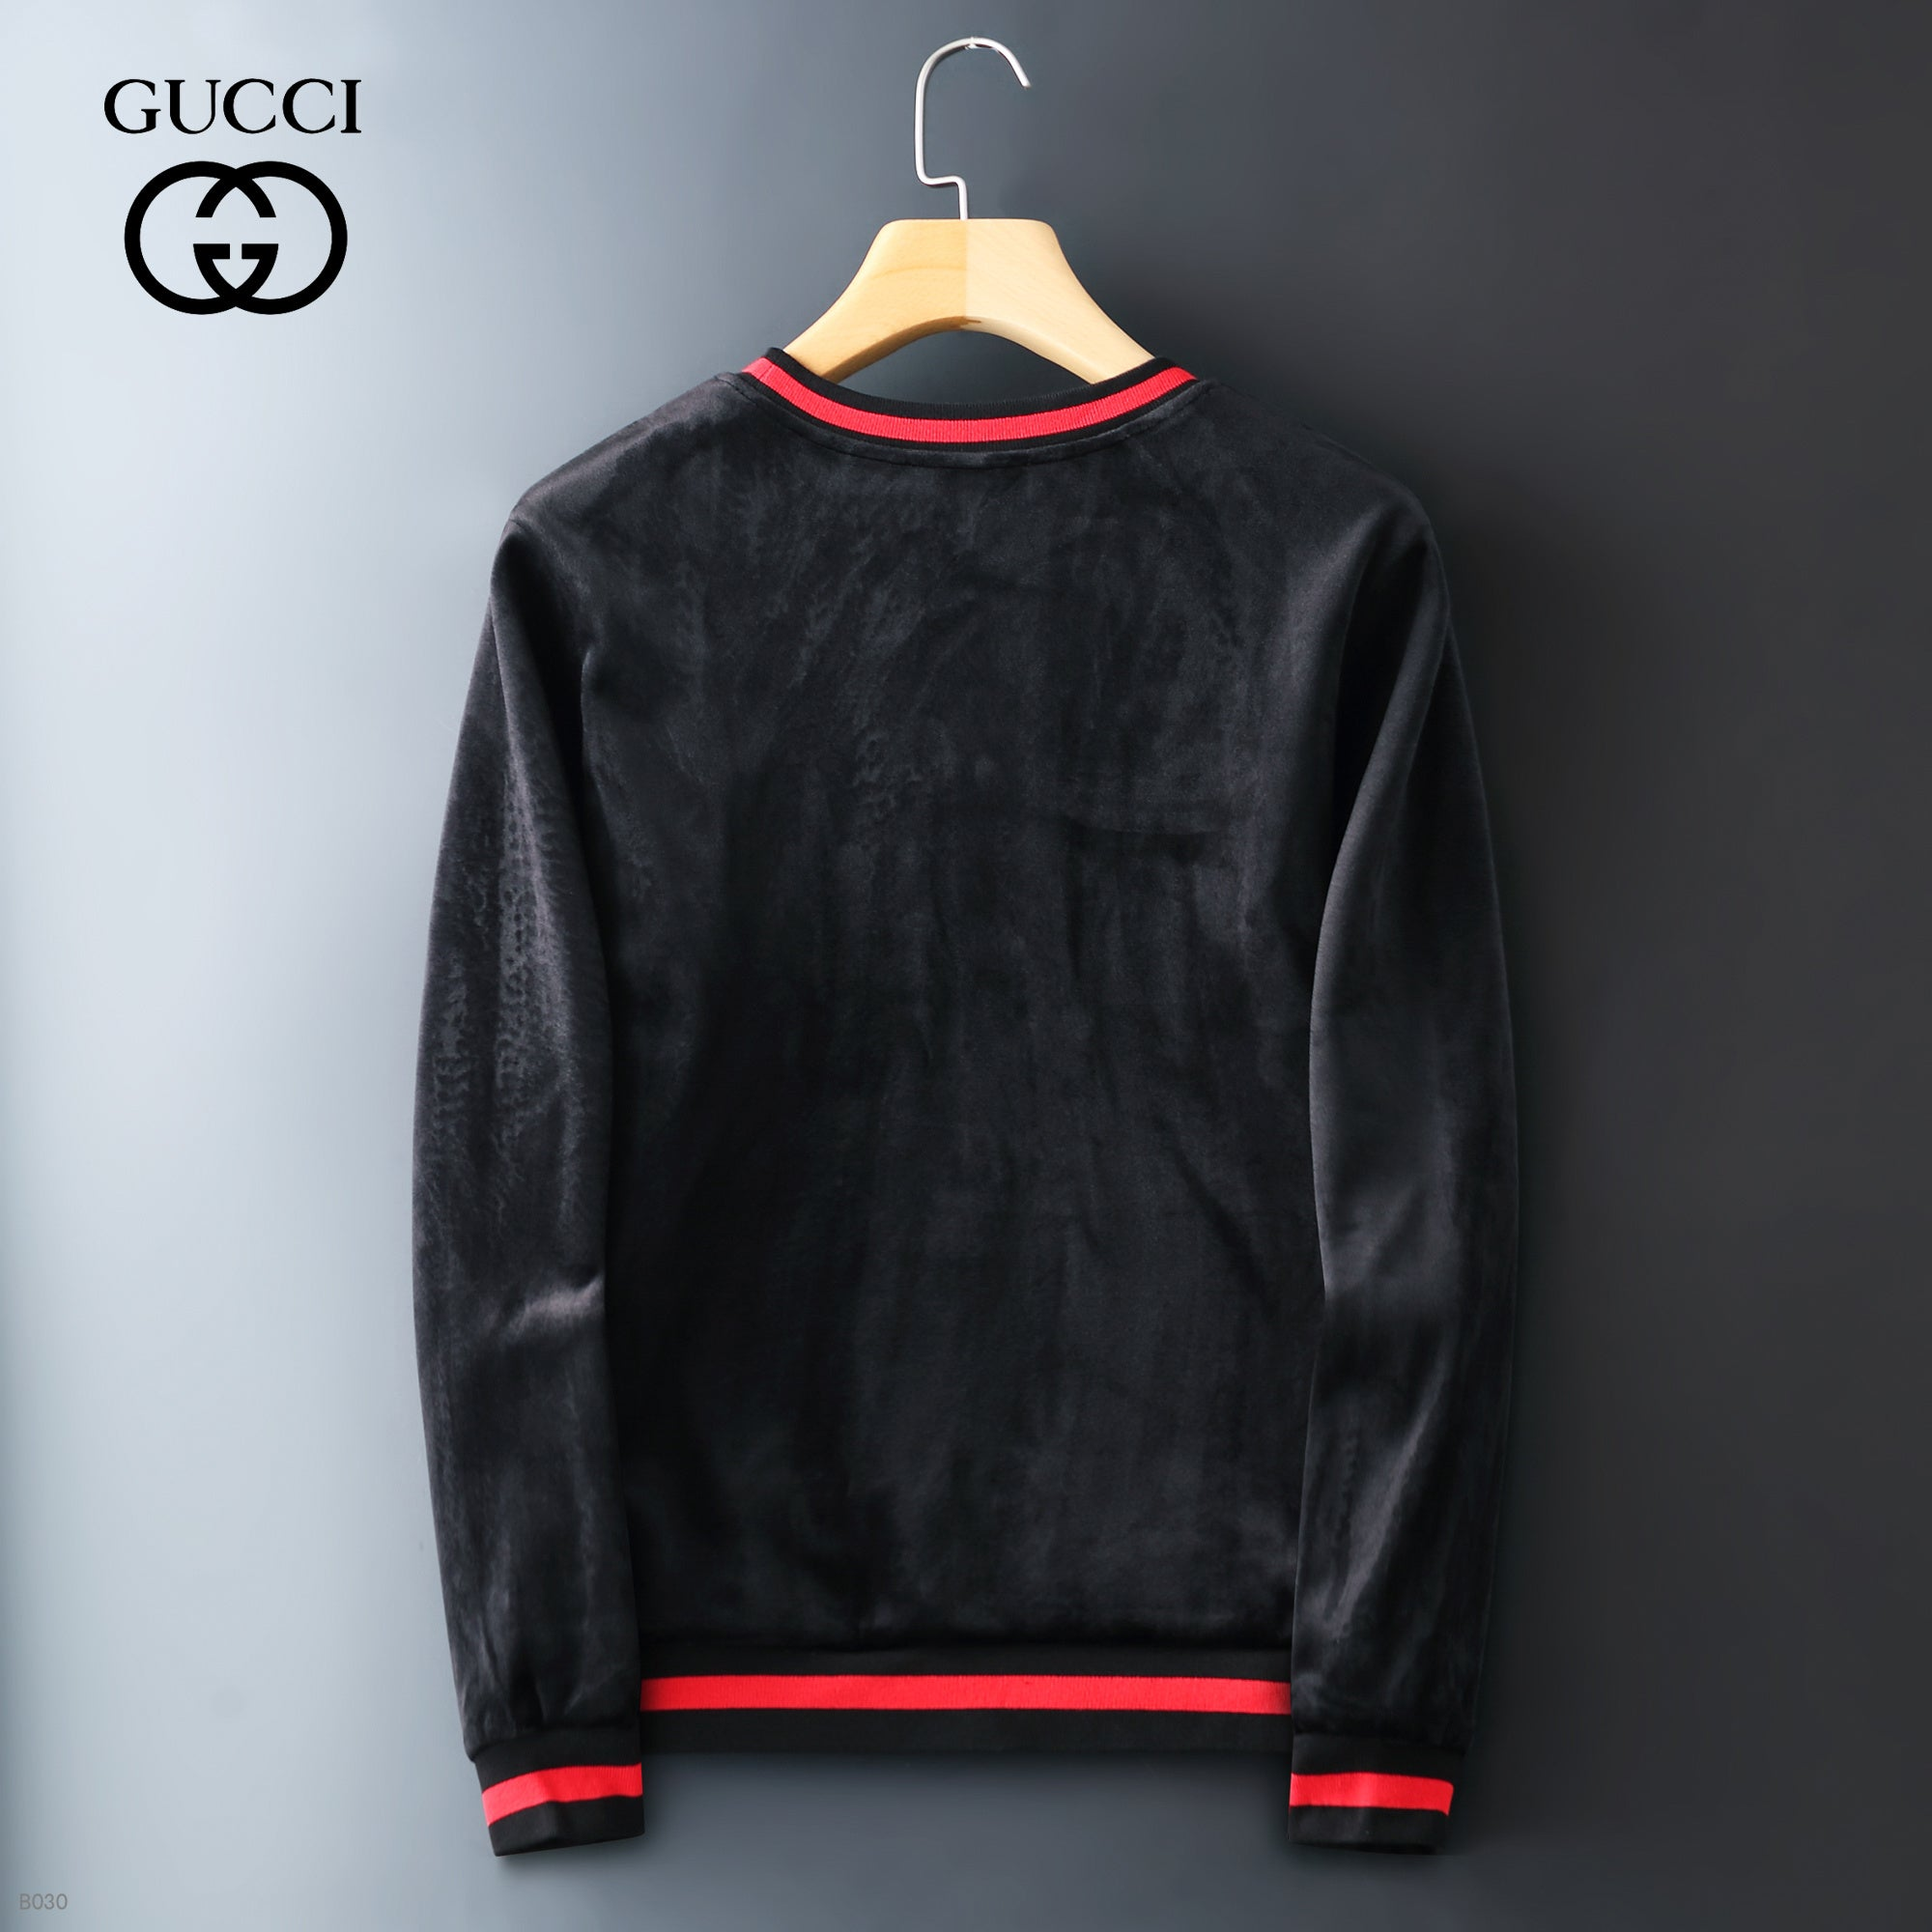 GG Luxury Sweater